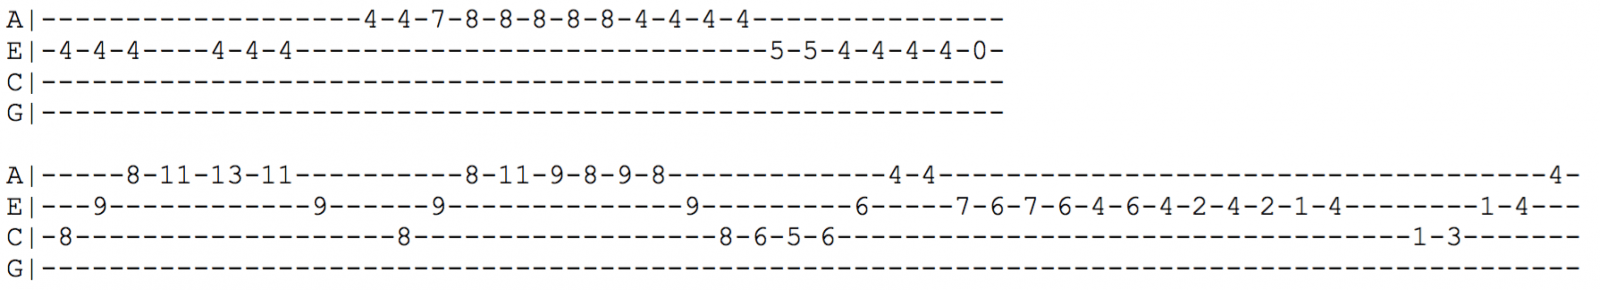 Ukulele Chords Stairway To Heaven Image Collections Piano Chord